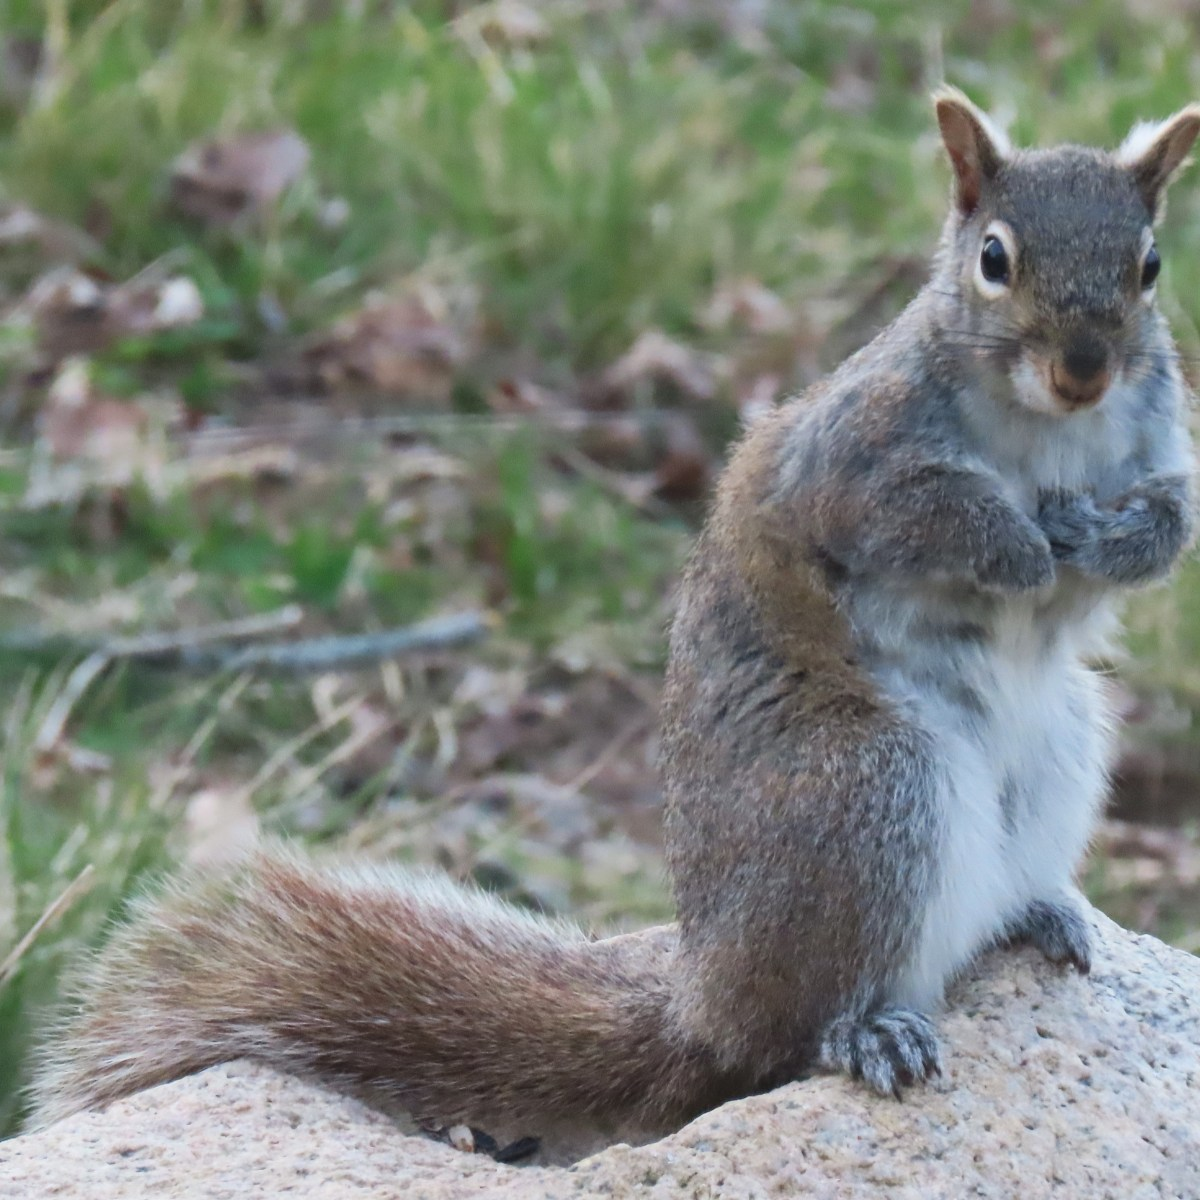 A gray squirrel stands on its hind legs on a rock